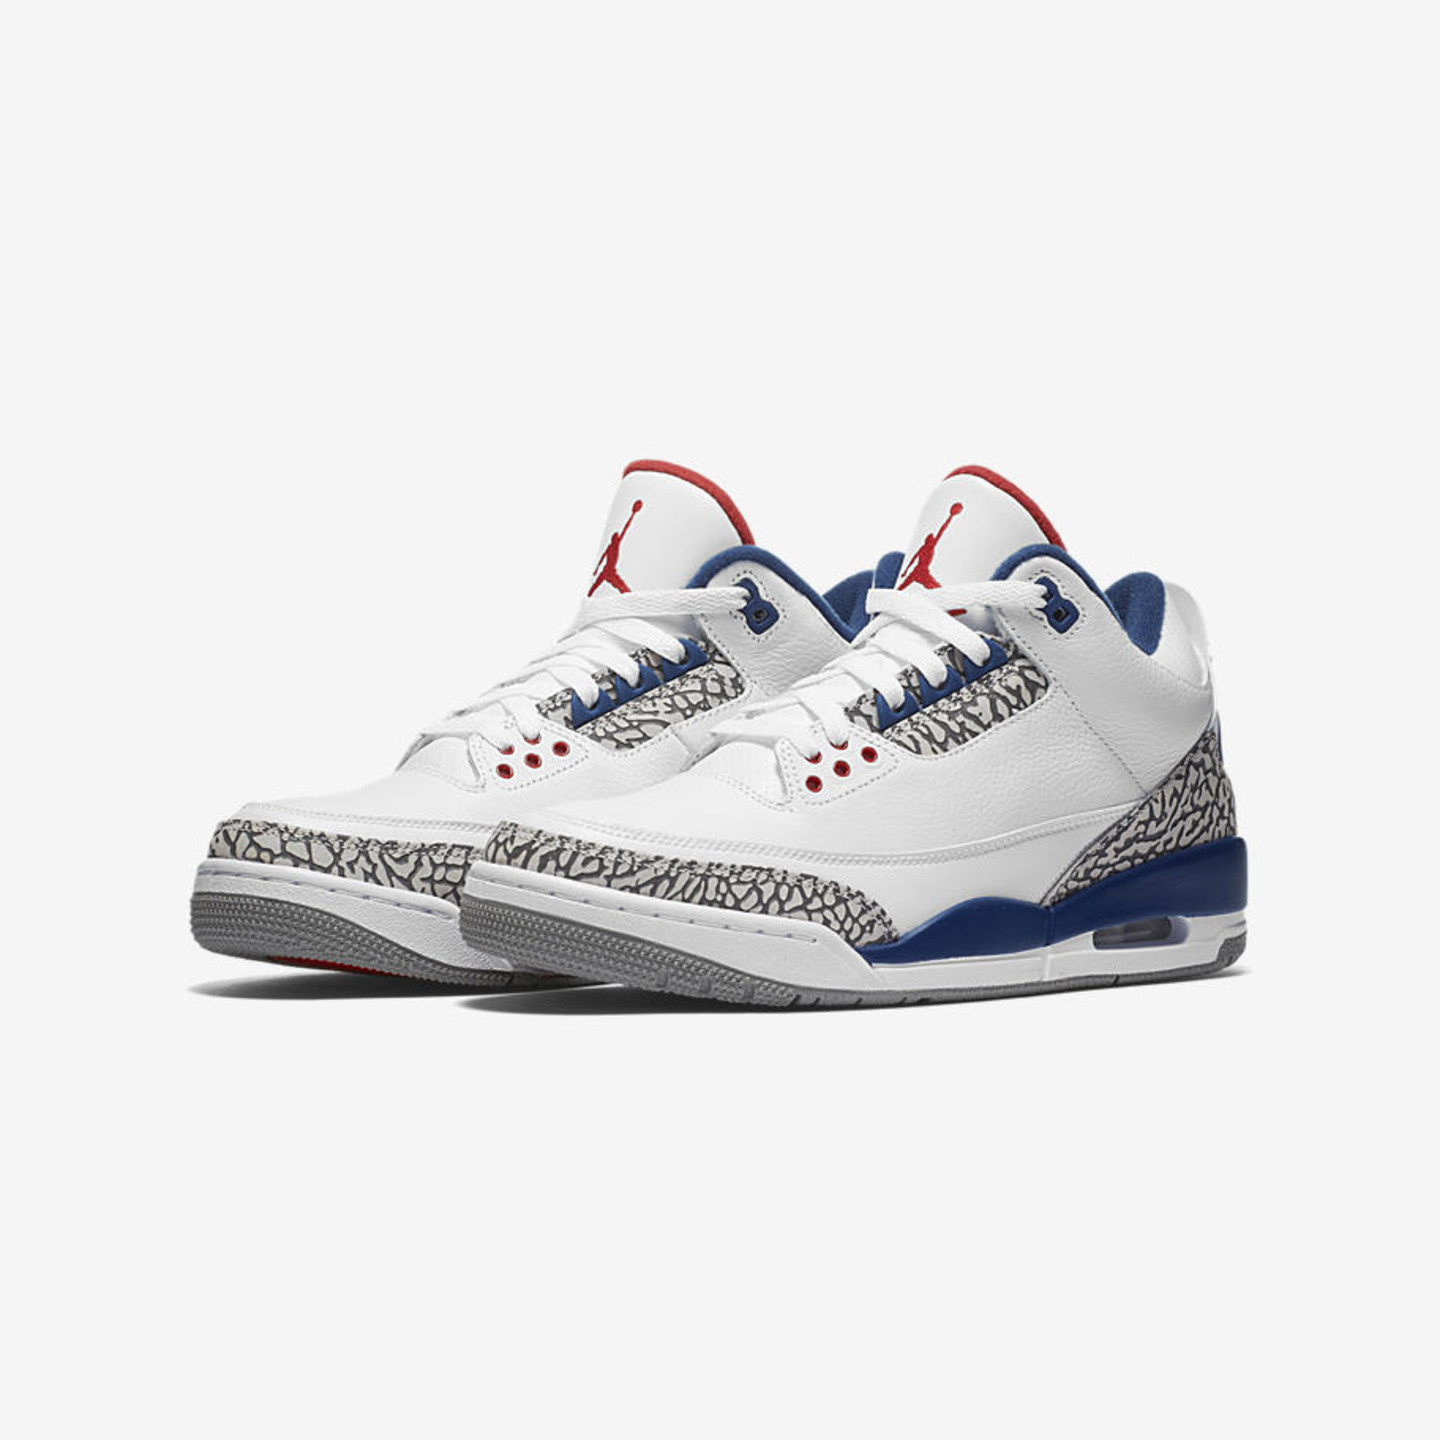 Jordan Air Jordan 3 Retro OG 'True Blue' GS True Blue / Cement Grey / Fire Red 854261-106-37.5